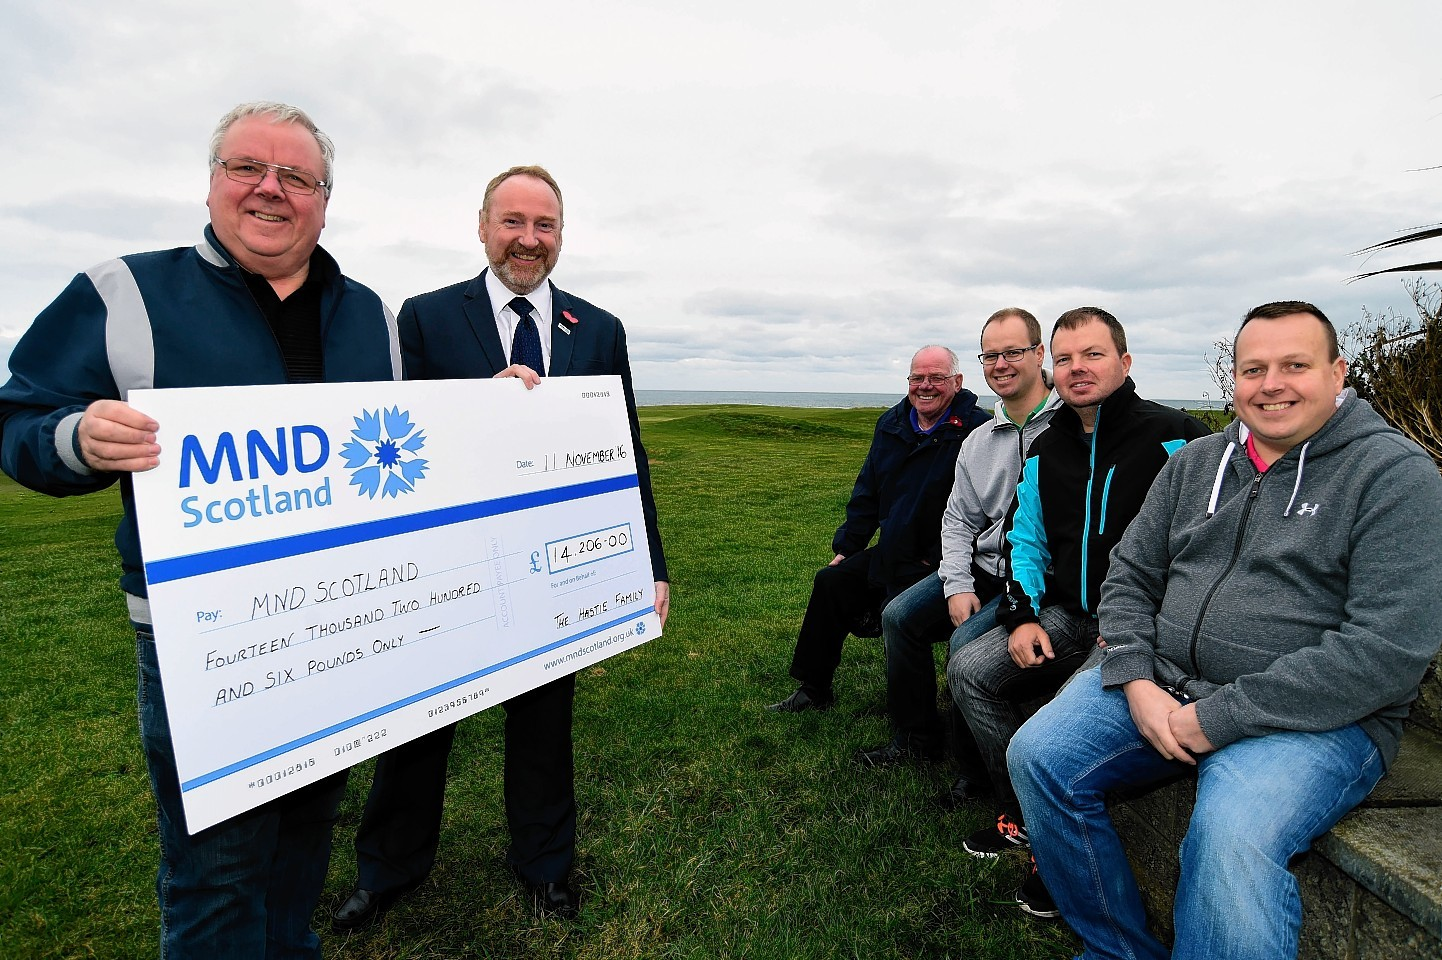 GEORGE HASTIE (L) AND MND SCOTLAND CEO CRAIG STILTON WITH A CHEQUE FOR £14,206, THE PROCEEDS OF A GOLF CHARITY DAY AT INVERALLOCHY ORGANISED BY THE HASTIE FAMILY.